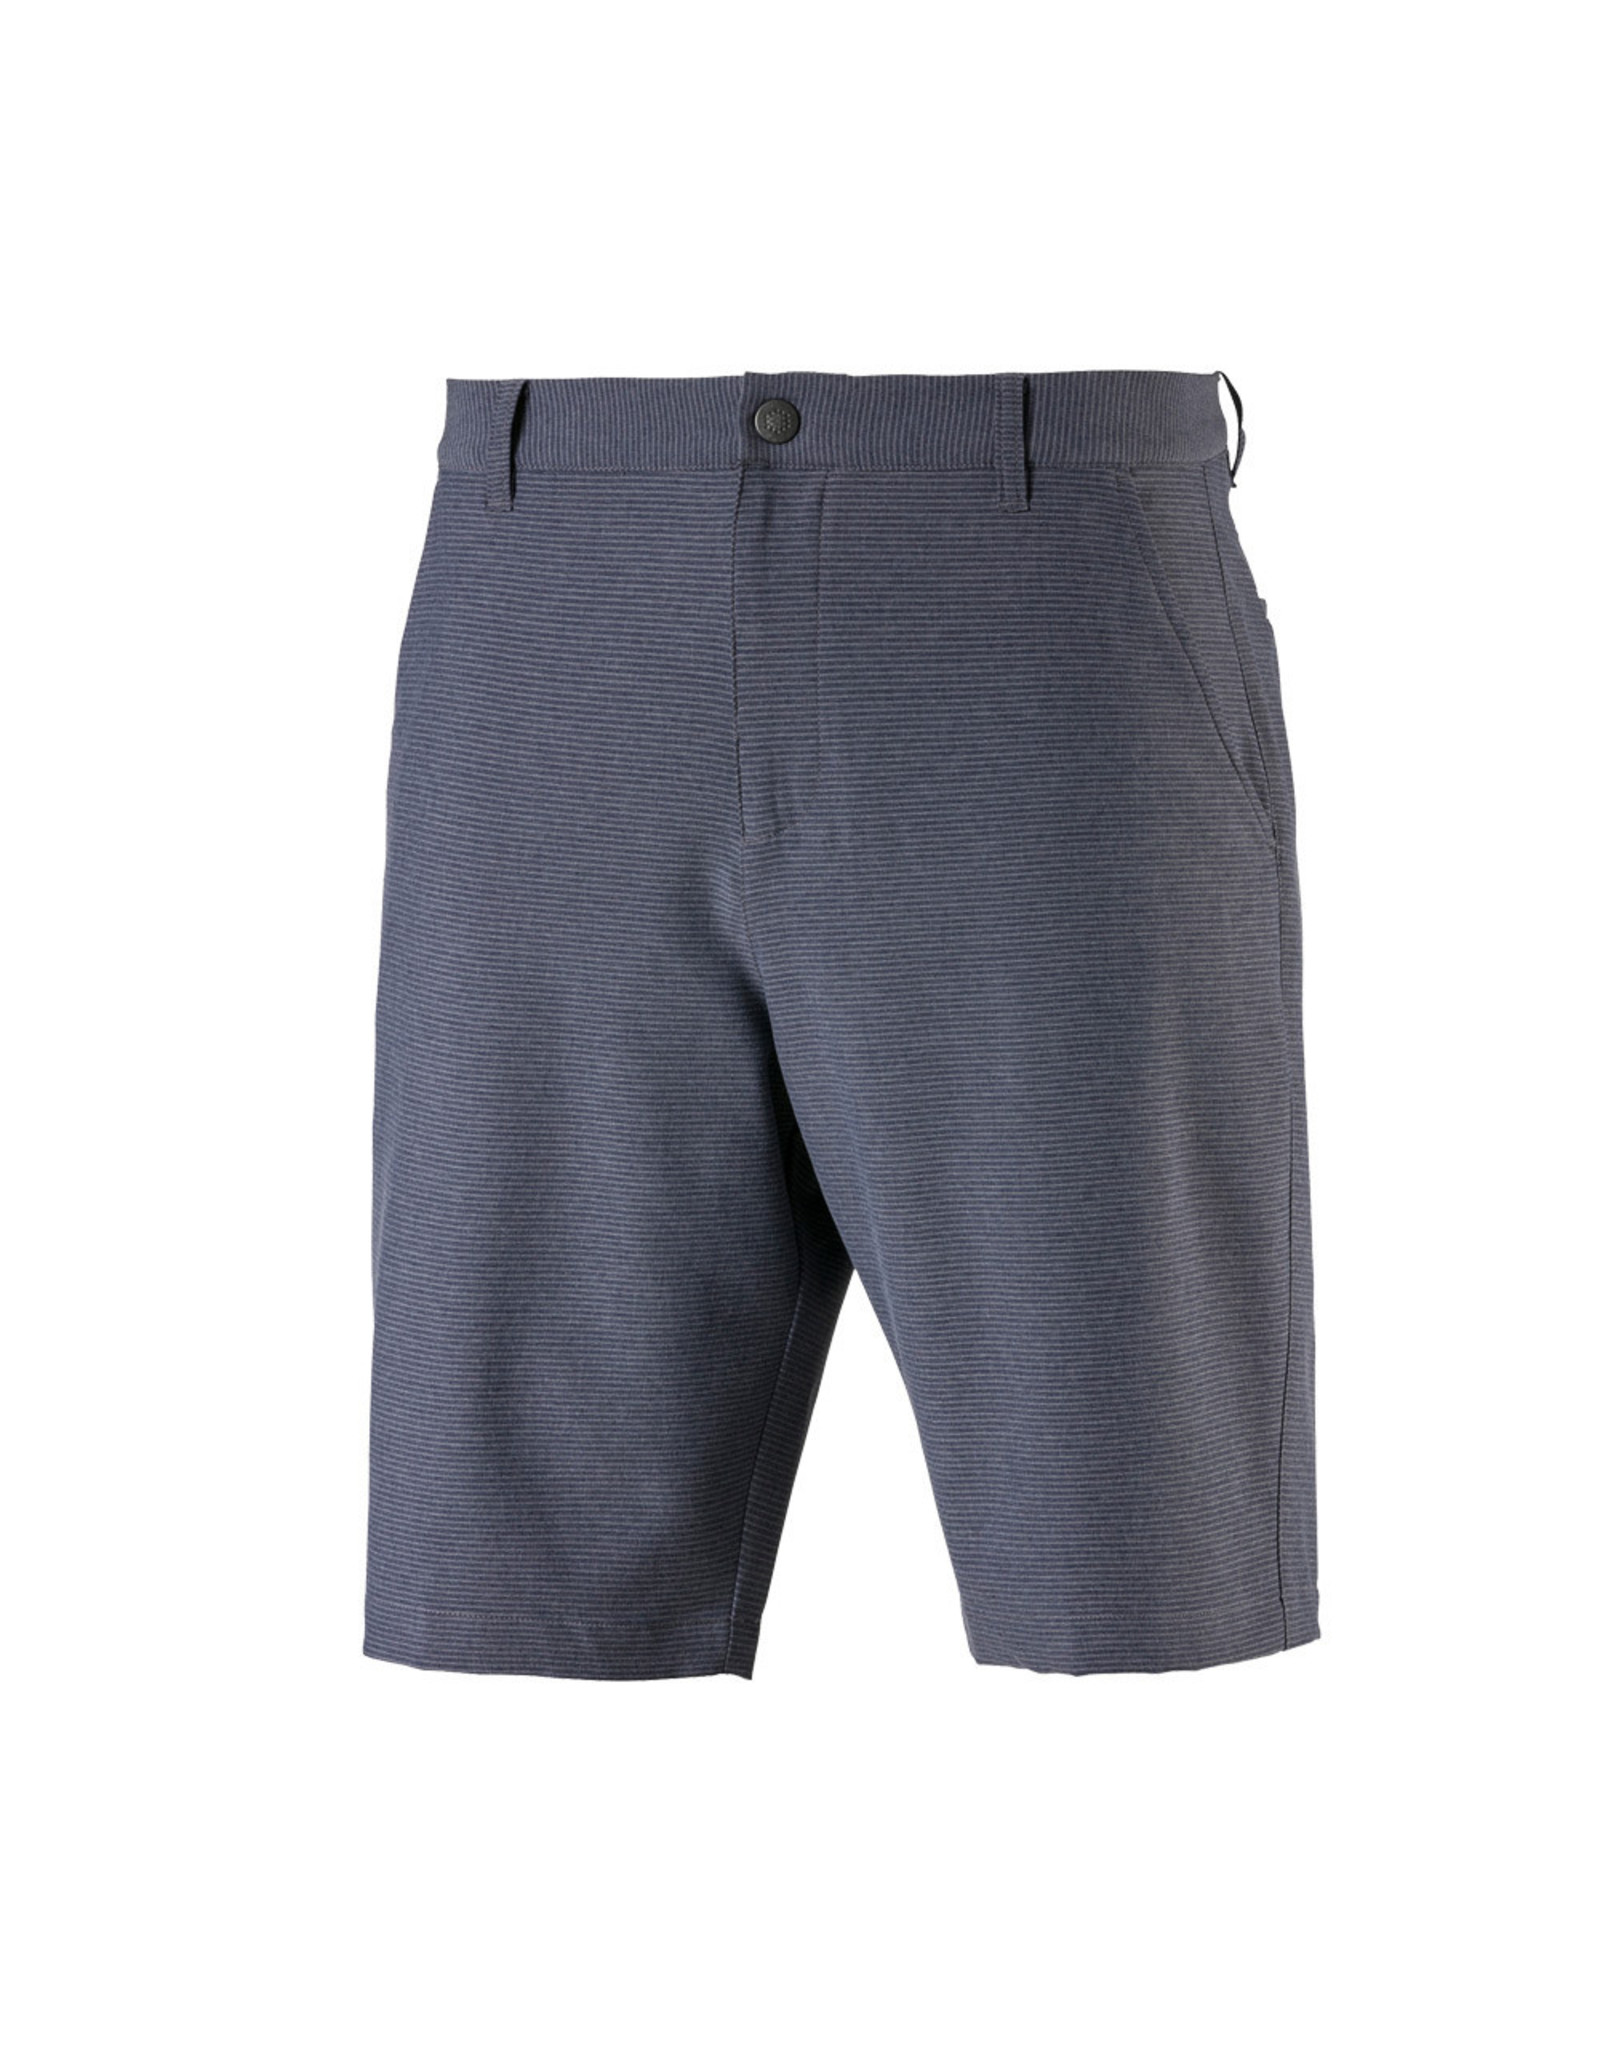 Puma Golf Puma Men's Marshal Shorts